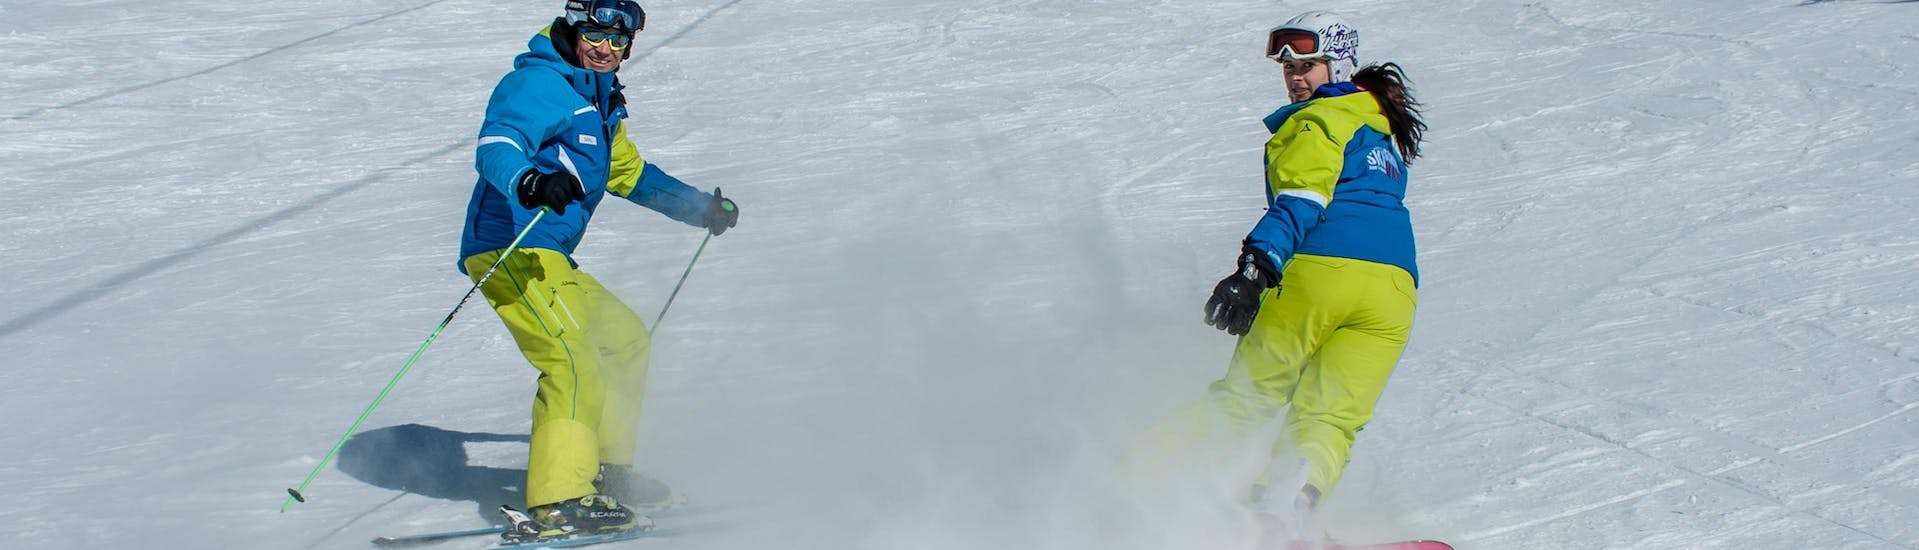 Private Ski Lessons for Adults of All Levels avec Skischool MALI / MALISPORT Oetz - Hero image